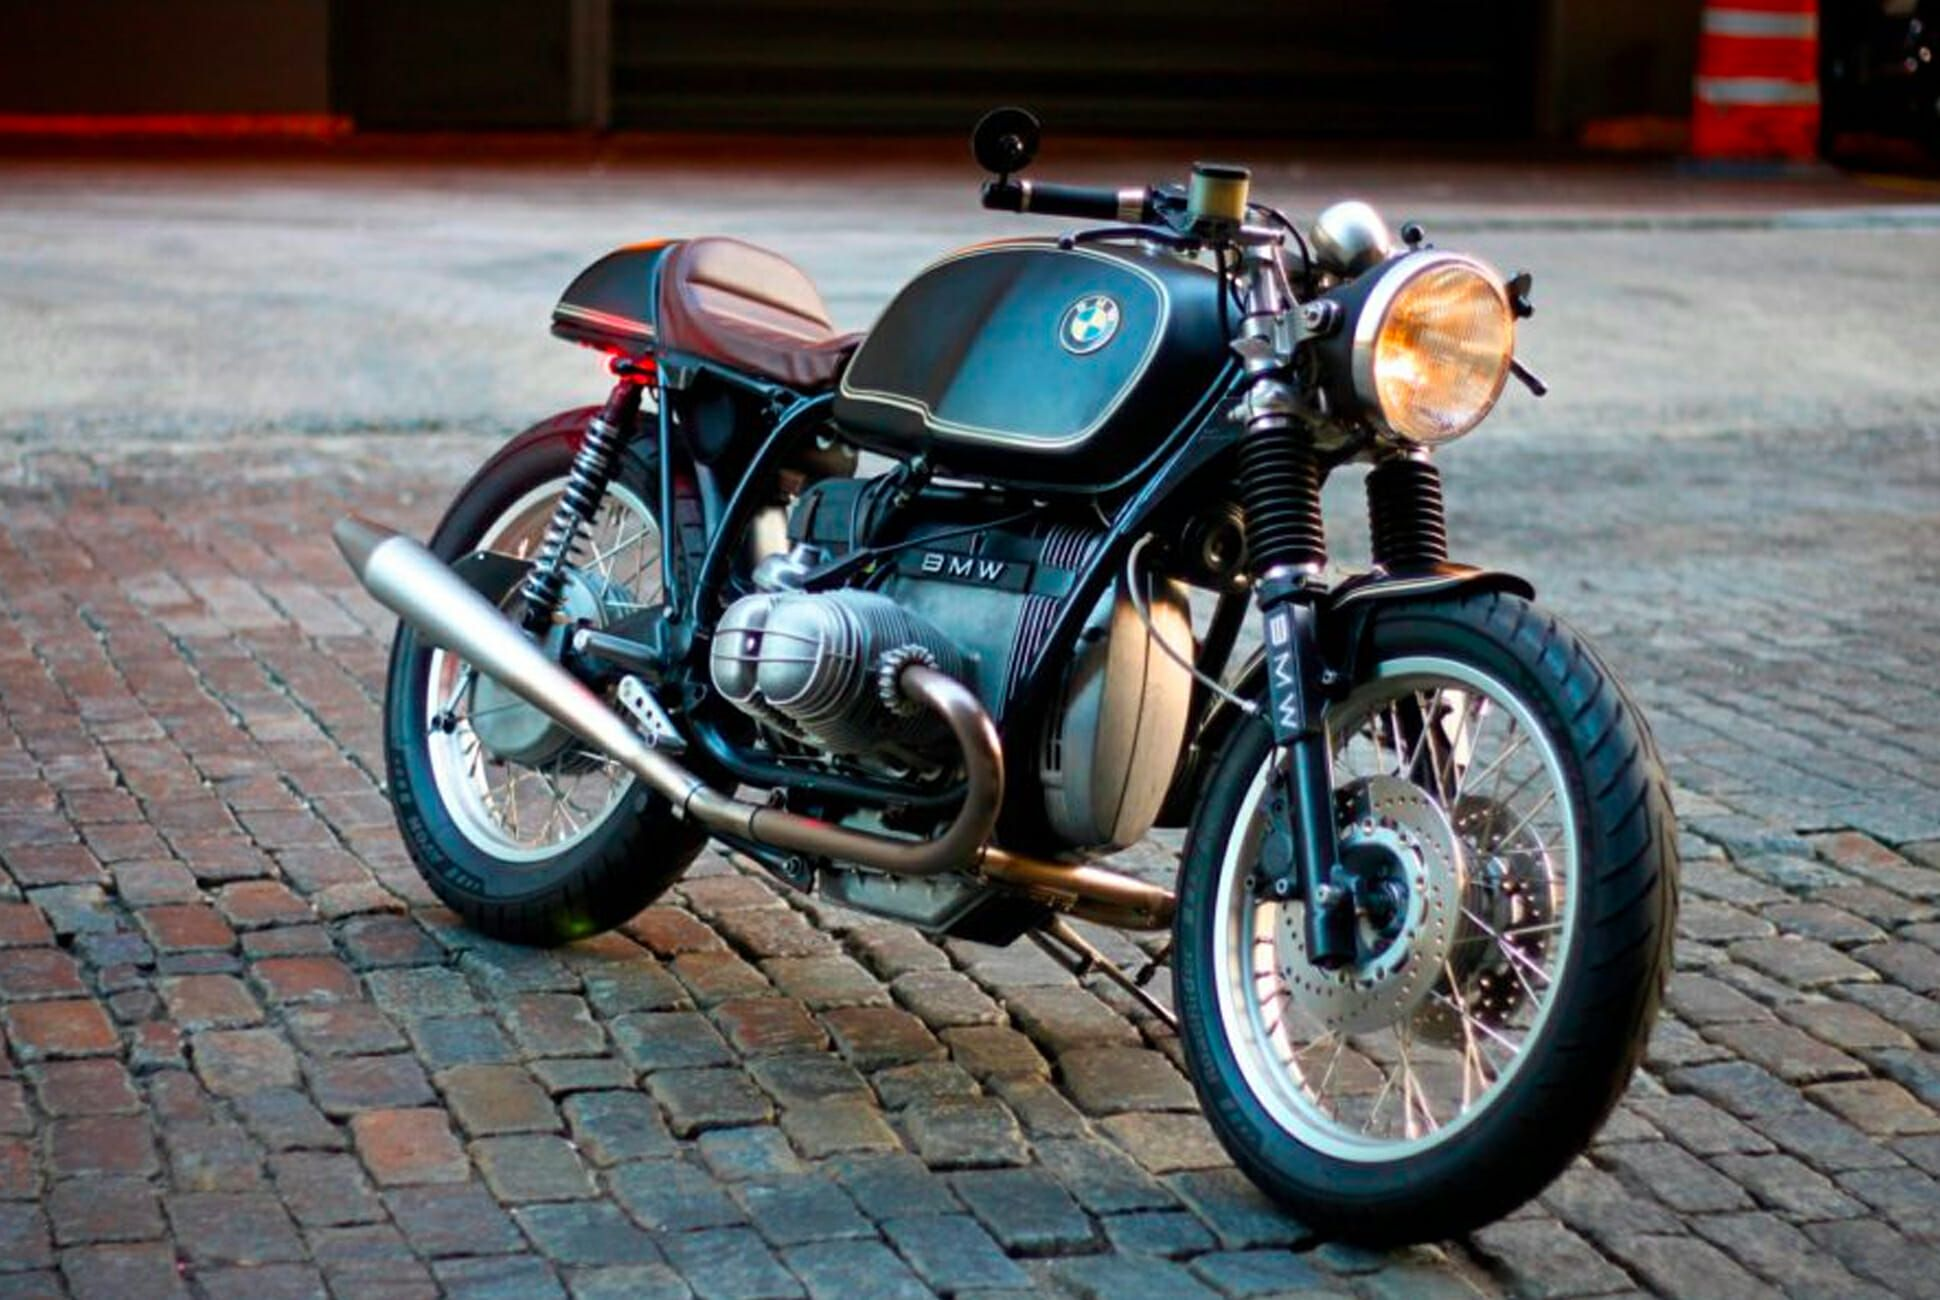 This Custom Bmw Cafe Racer Proves Some Motorcycles Are Truly Timeless